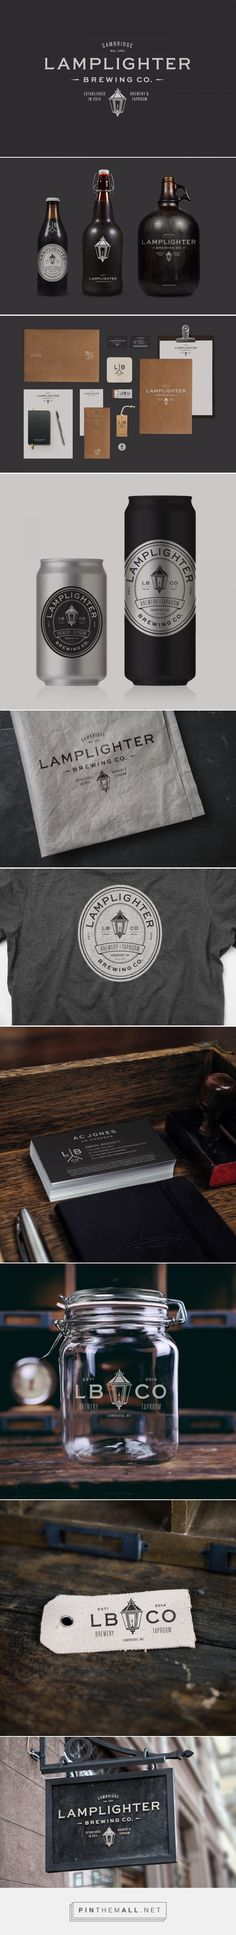 Lamplighter Brewing Co. Branding and Packaging by Bluerock Design Co. | Fivestar Branding Agency – Design and Branding Agency & Curated Inspiration Gallery